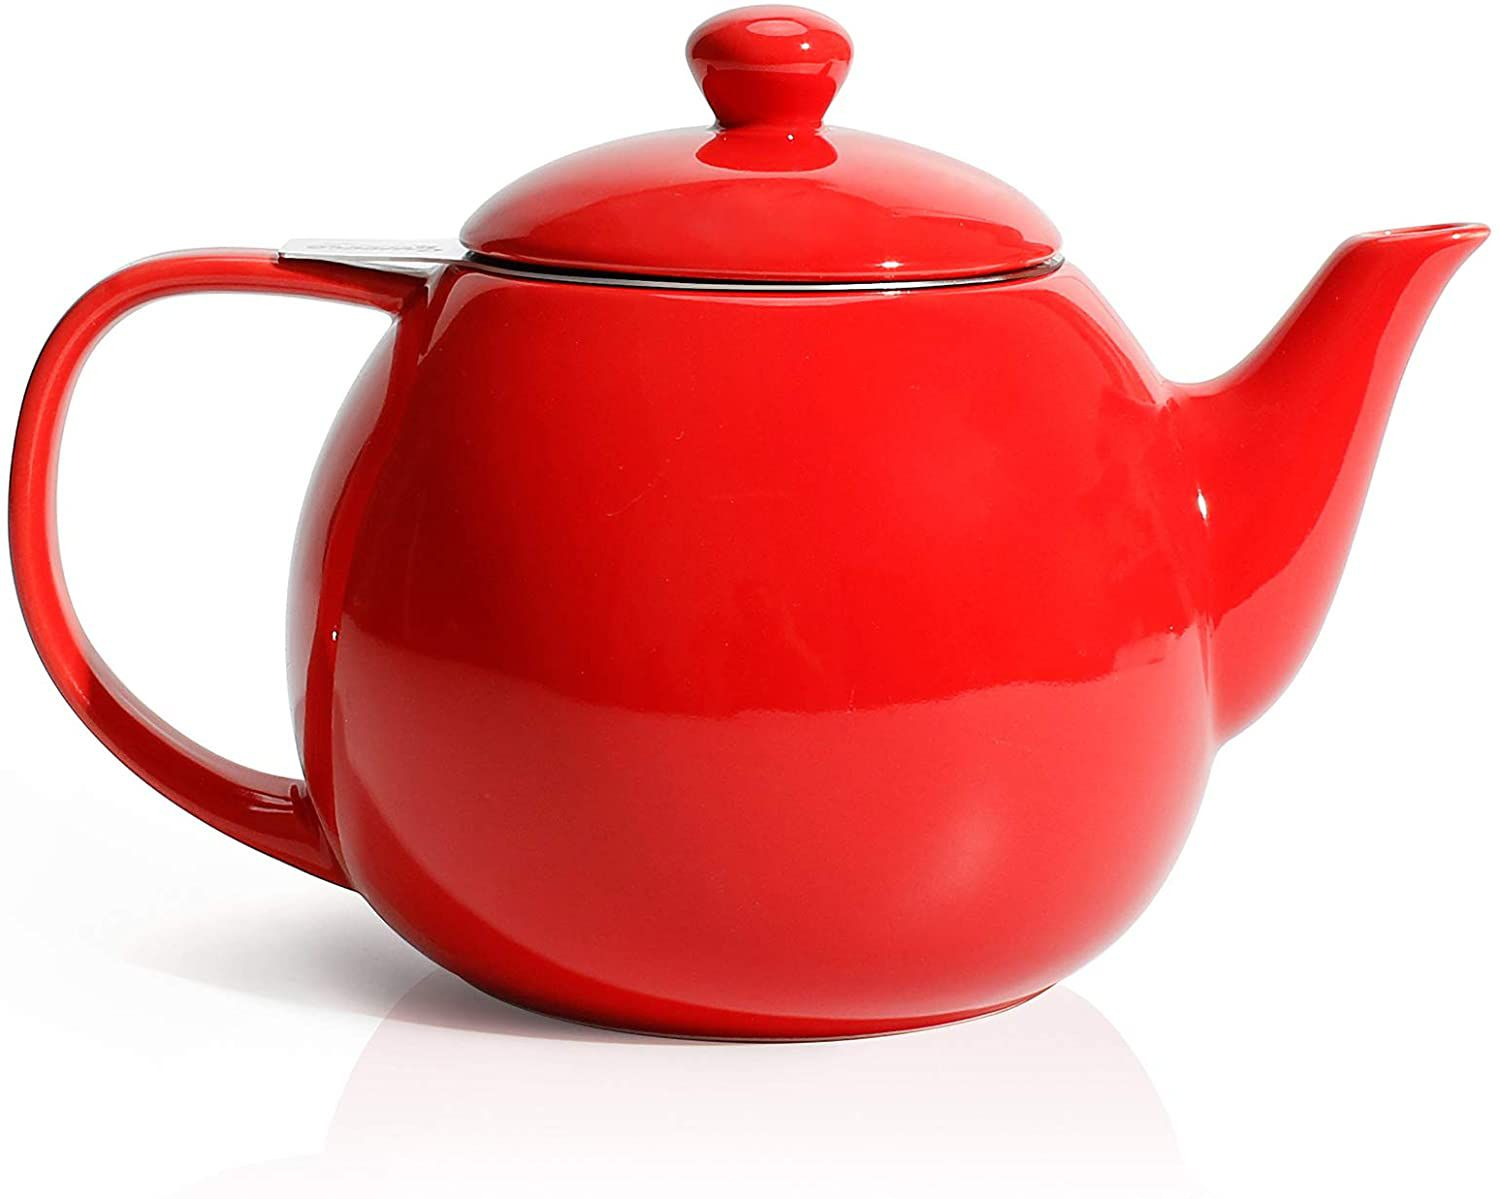 Sweese Porcelain Teapot with Infuser